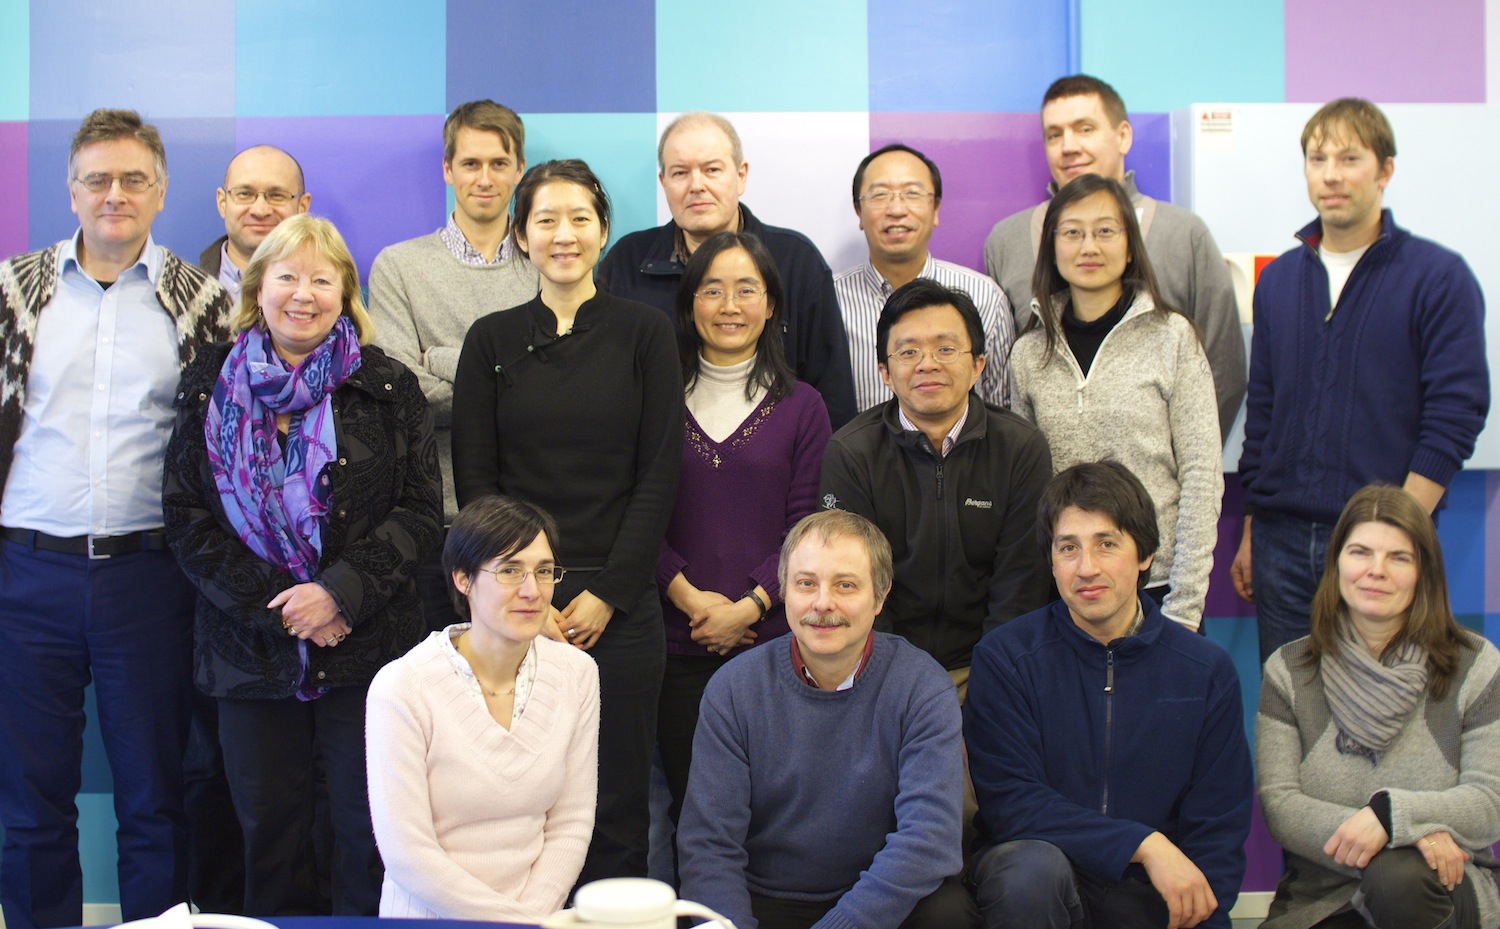 From left to right, top to bottom row:  Níels Einarsson, Vladimir Semenov, Tarjei Breiteig, Sergey Gulev, Yongqi Gao, Bernt Viggo Matheussen, Torben Königk, Astrid Ogilvie, Camille Li, Shuting Yang, Martin King, Linglin Chen, Mahaut de Vareilles, Markus Meier, Noel Keenlyside, Ina Kindem. Photo: Gudrun Sylte, Bjerknes Center for Climate Research (BCCR)